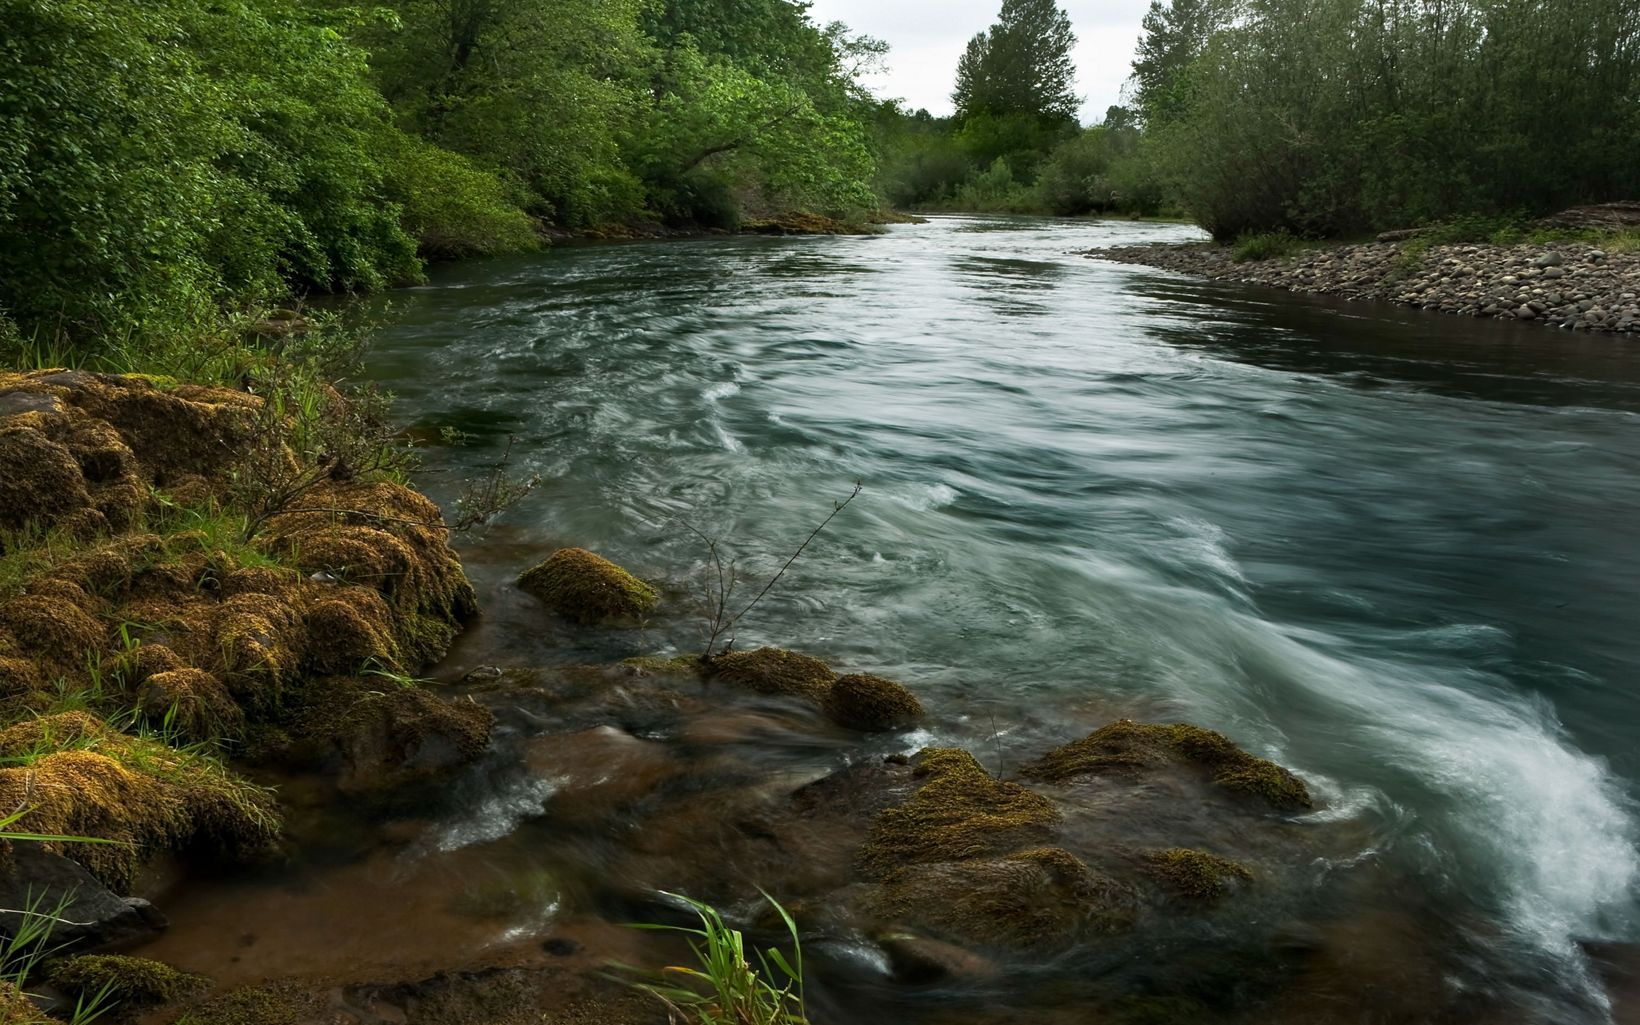 (LIMITED INTERNAL RIGHTS) At the confluence of the Middle and Coast Forks of Oregon's Willamette River, cool waters, thick woodlands  and vast wetlands represent a unique chance  to  preserve  increasingly rare  elements of the Willamette  Valley's natural heritage. Photo credit: © Rick McEwan